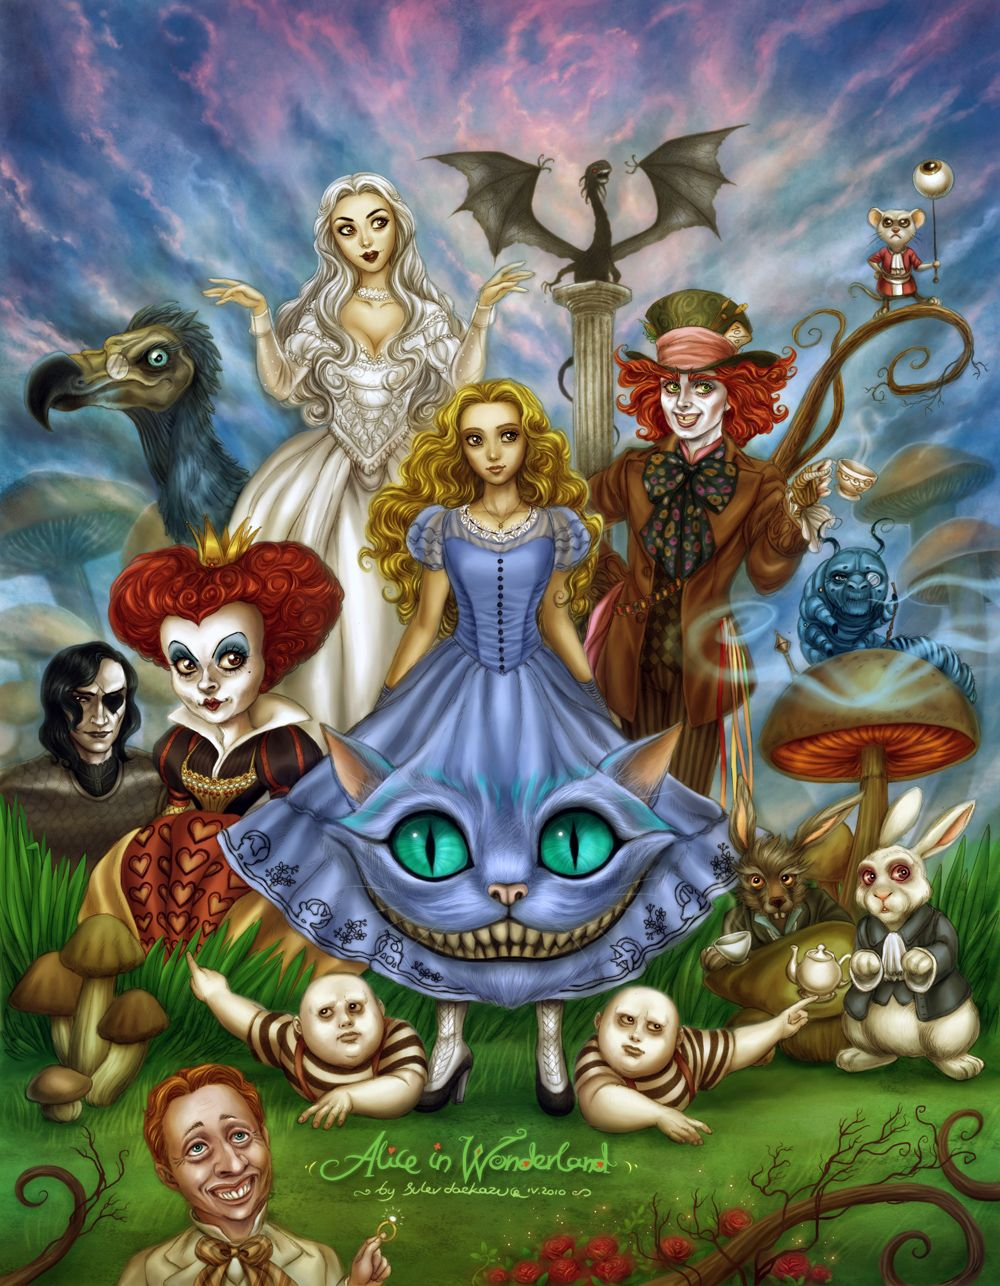 Alice In Wonderland Characters And Costumes